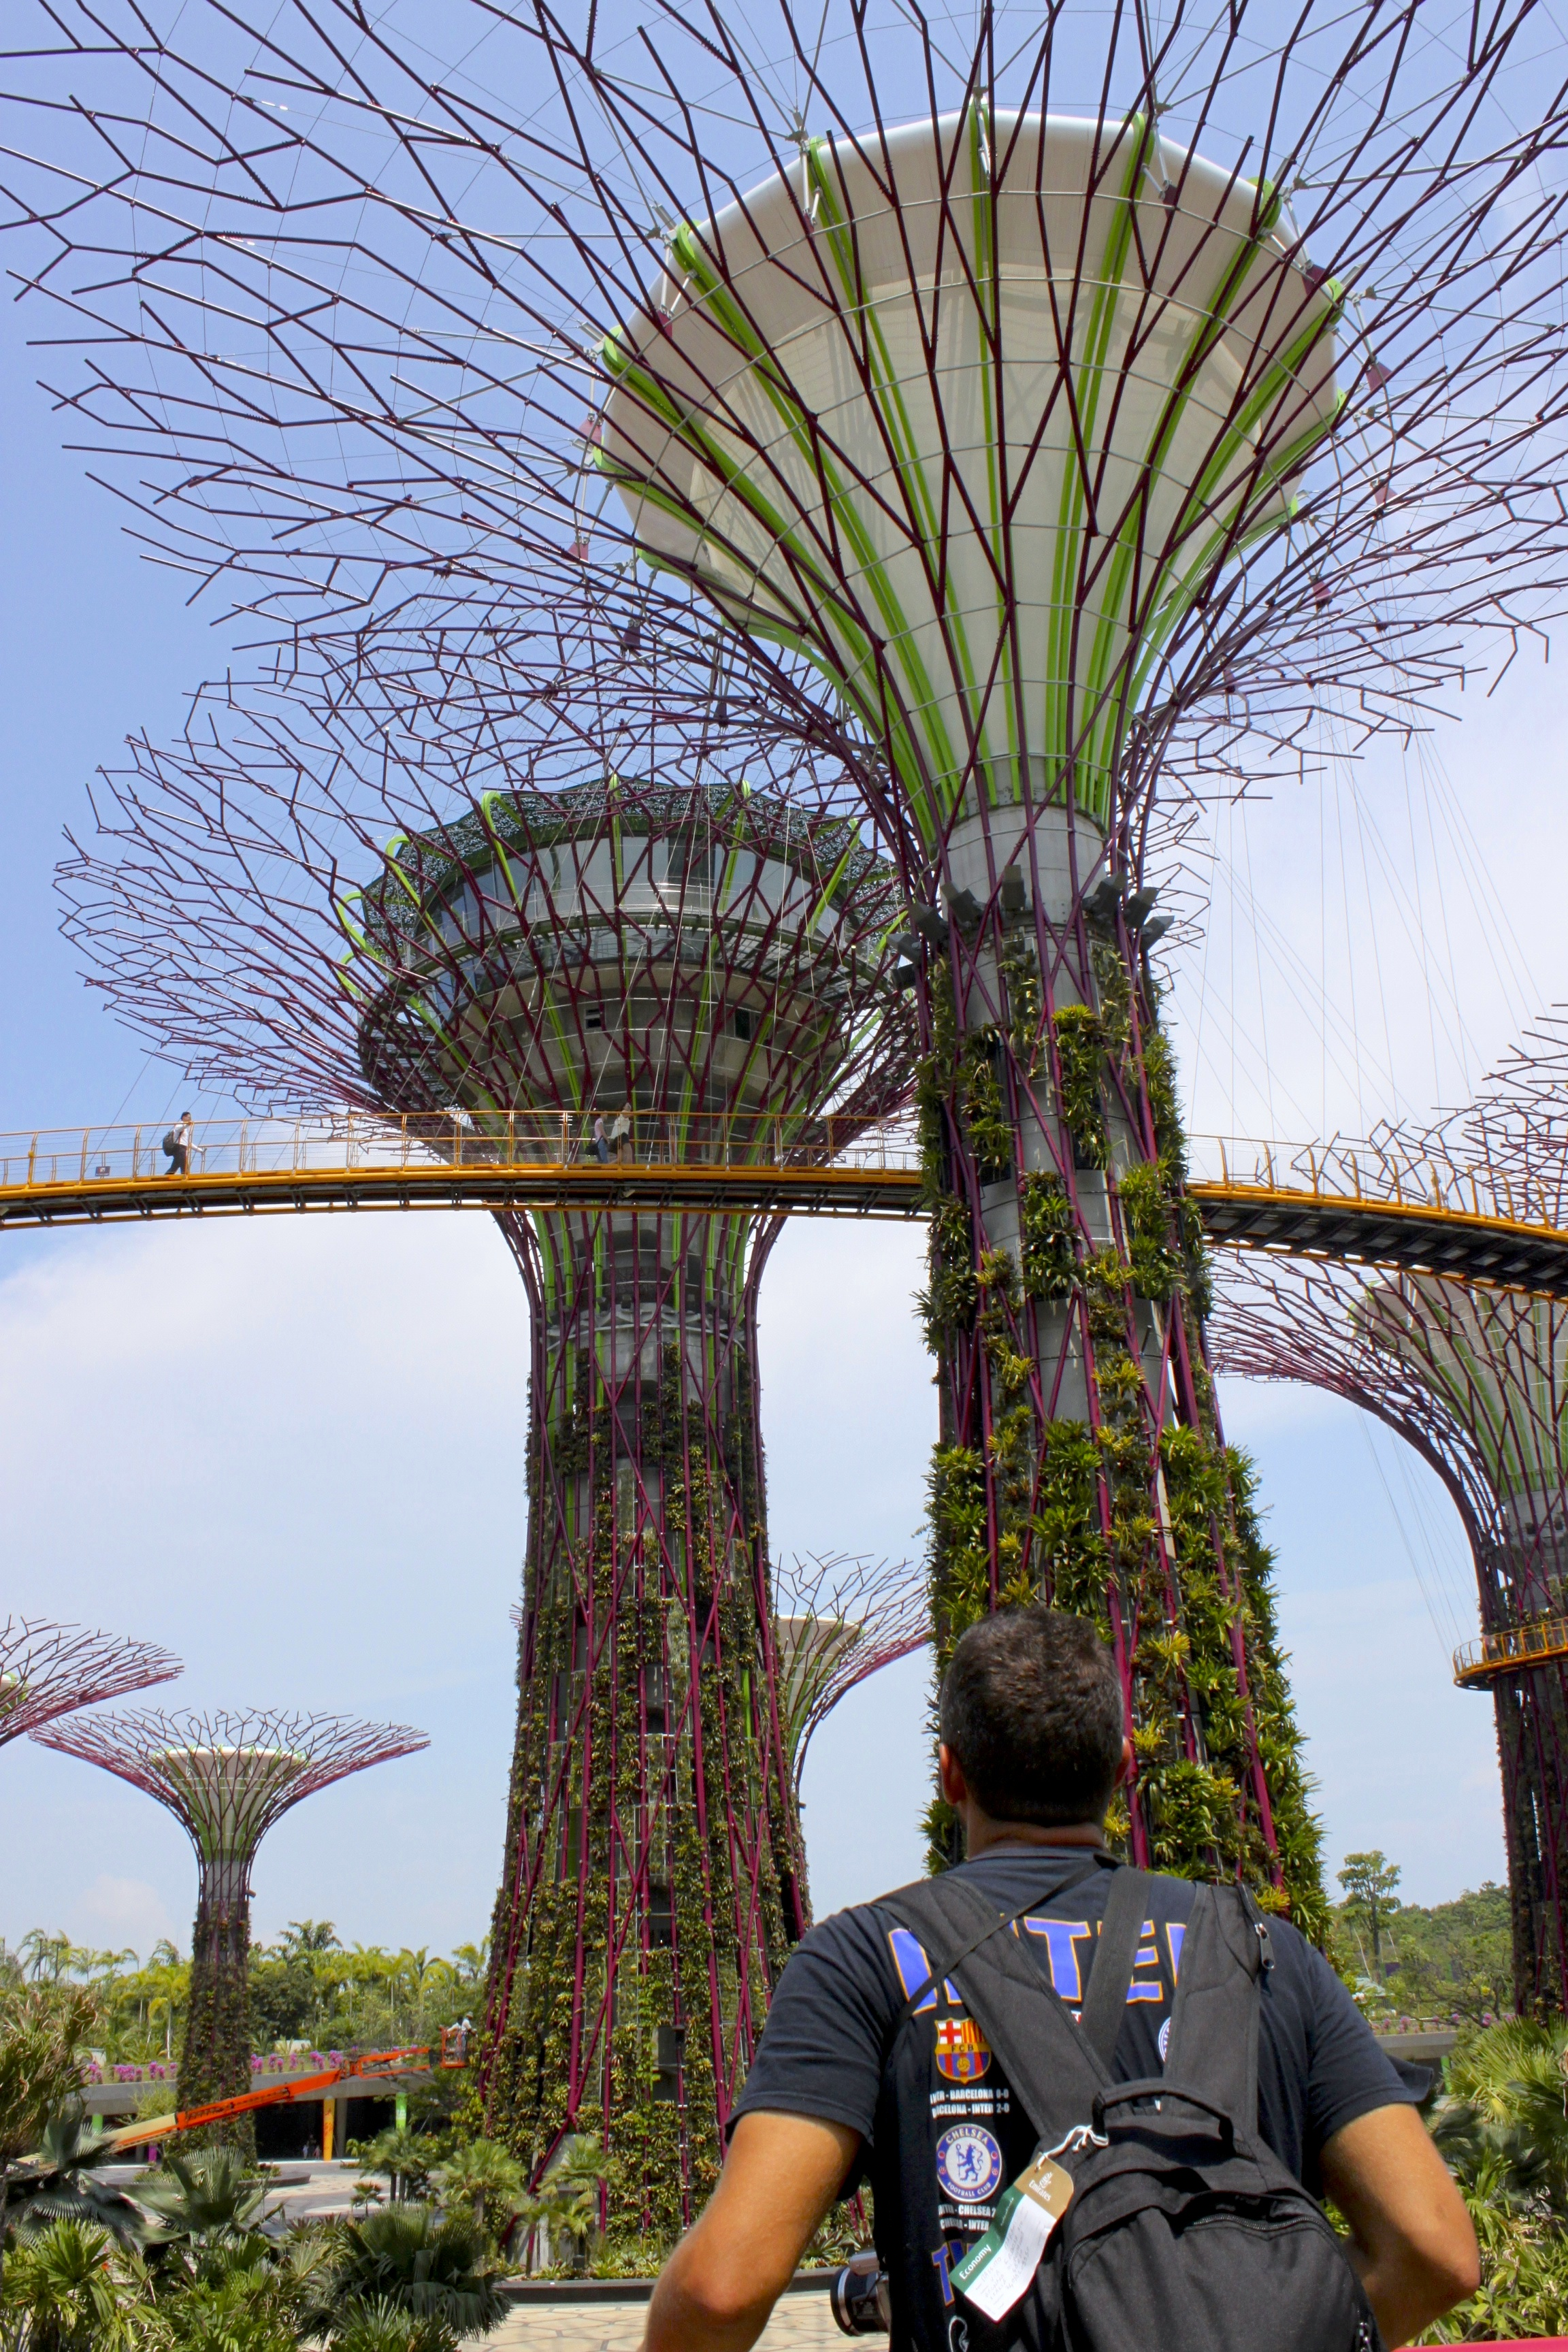 Gardens by the bay, pazzeschi